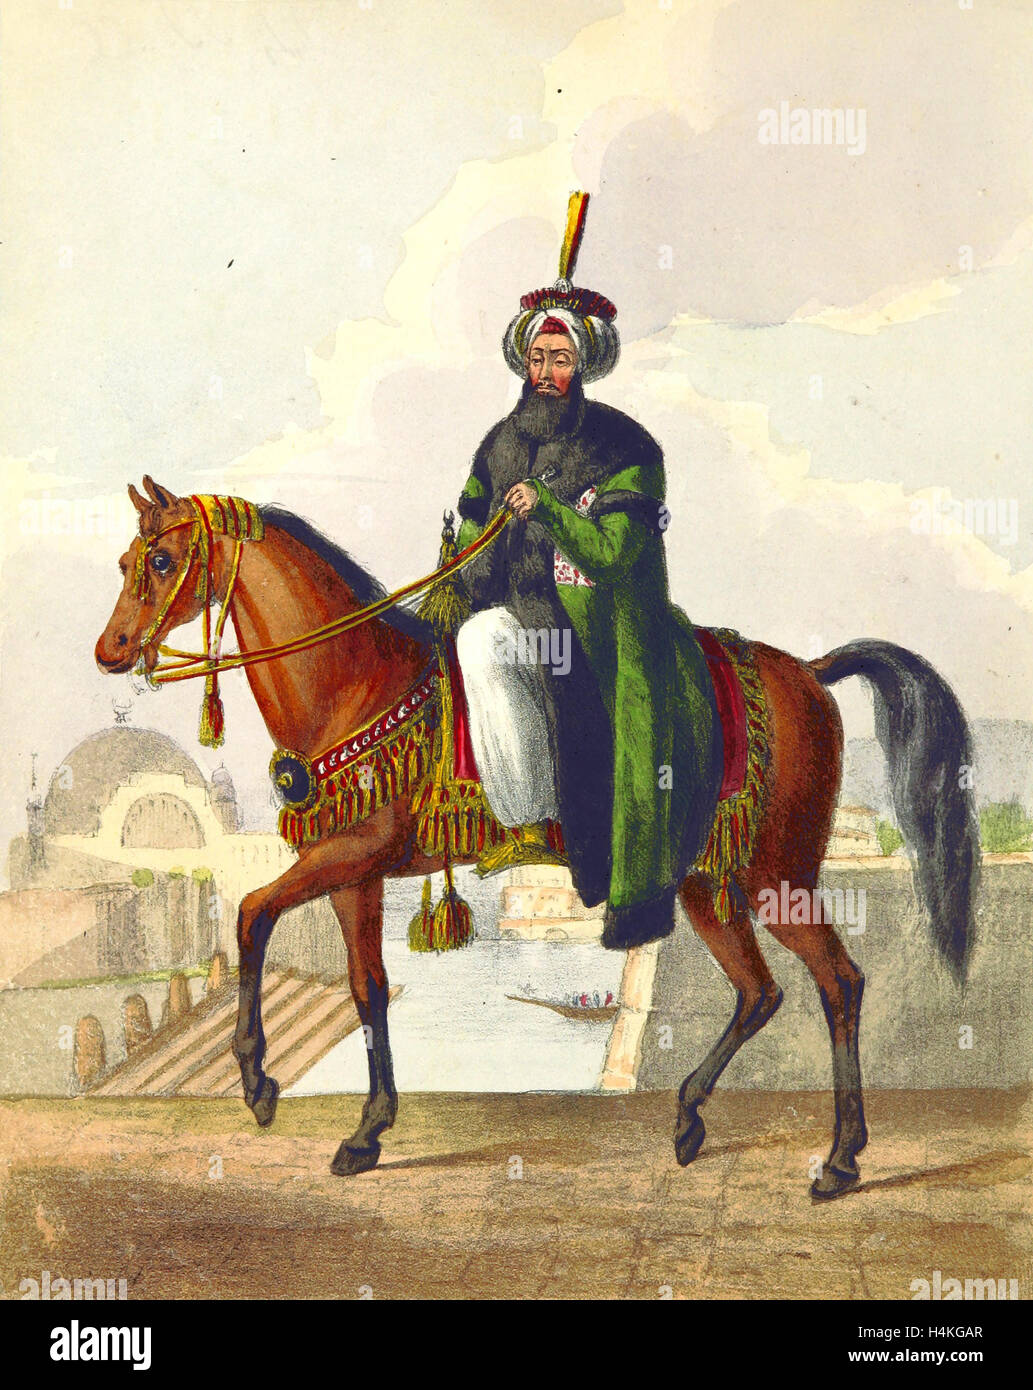 Sultan Mahmood, Constantinople in 1828, in the Turkish Capital and Provinces, Ottoman Empire, 19th century engraving - Stock Image